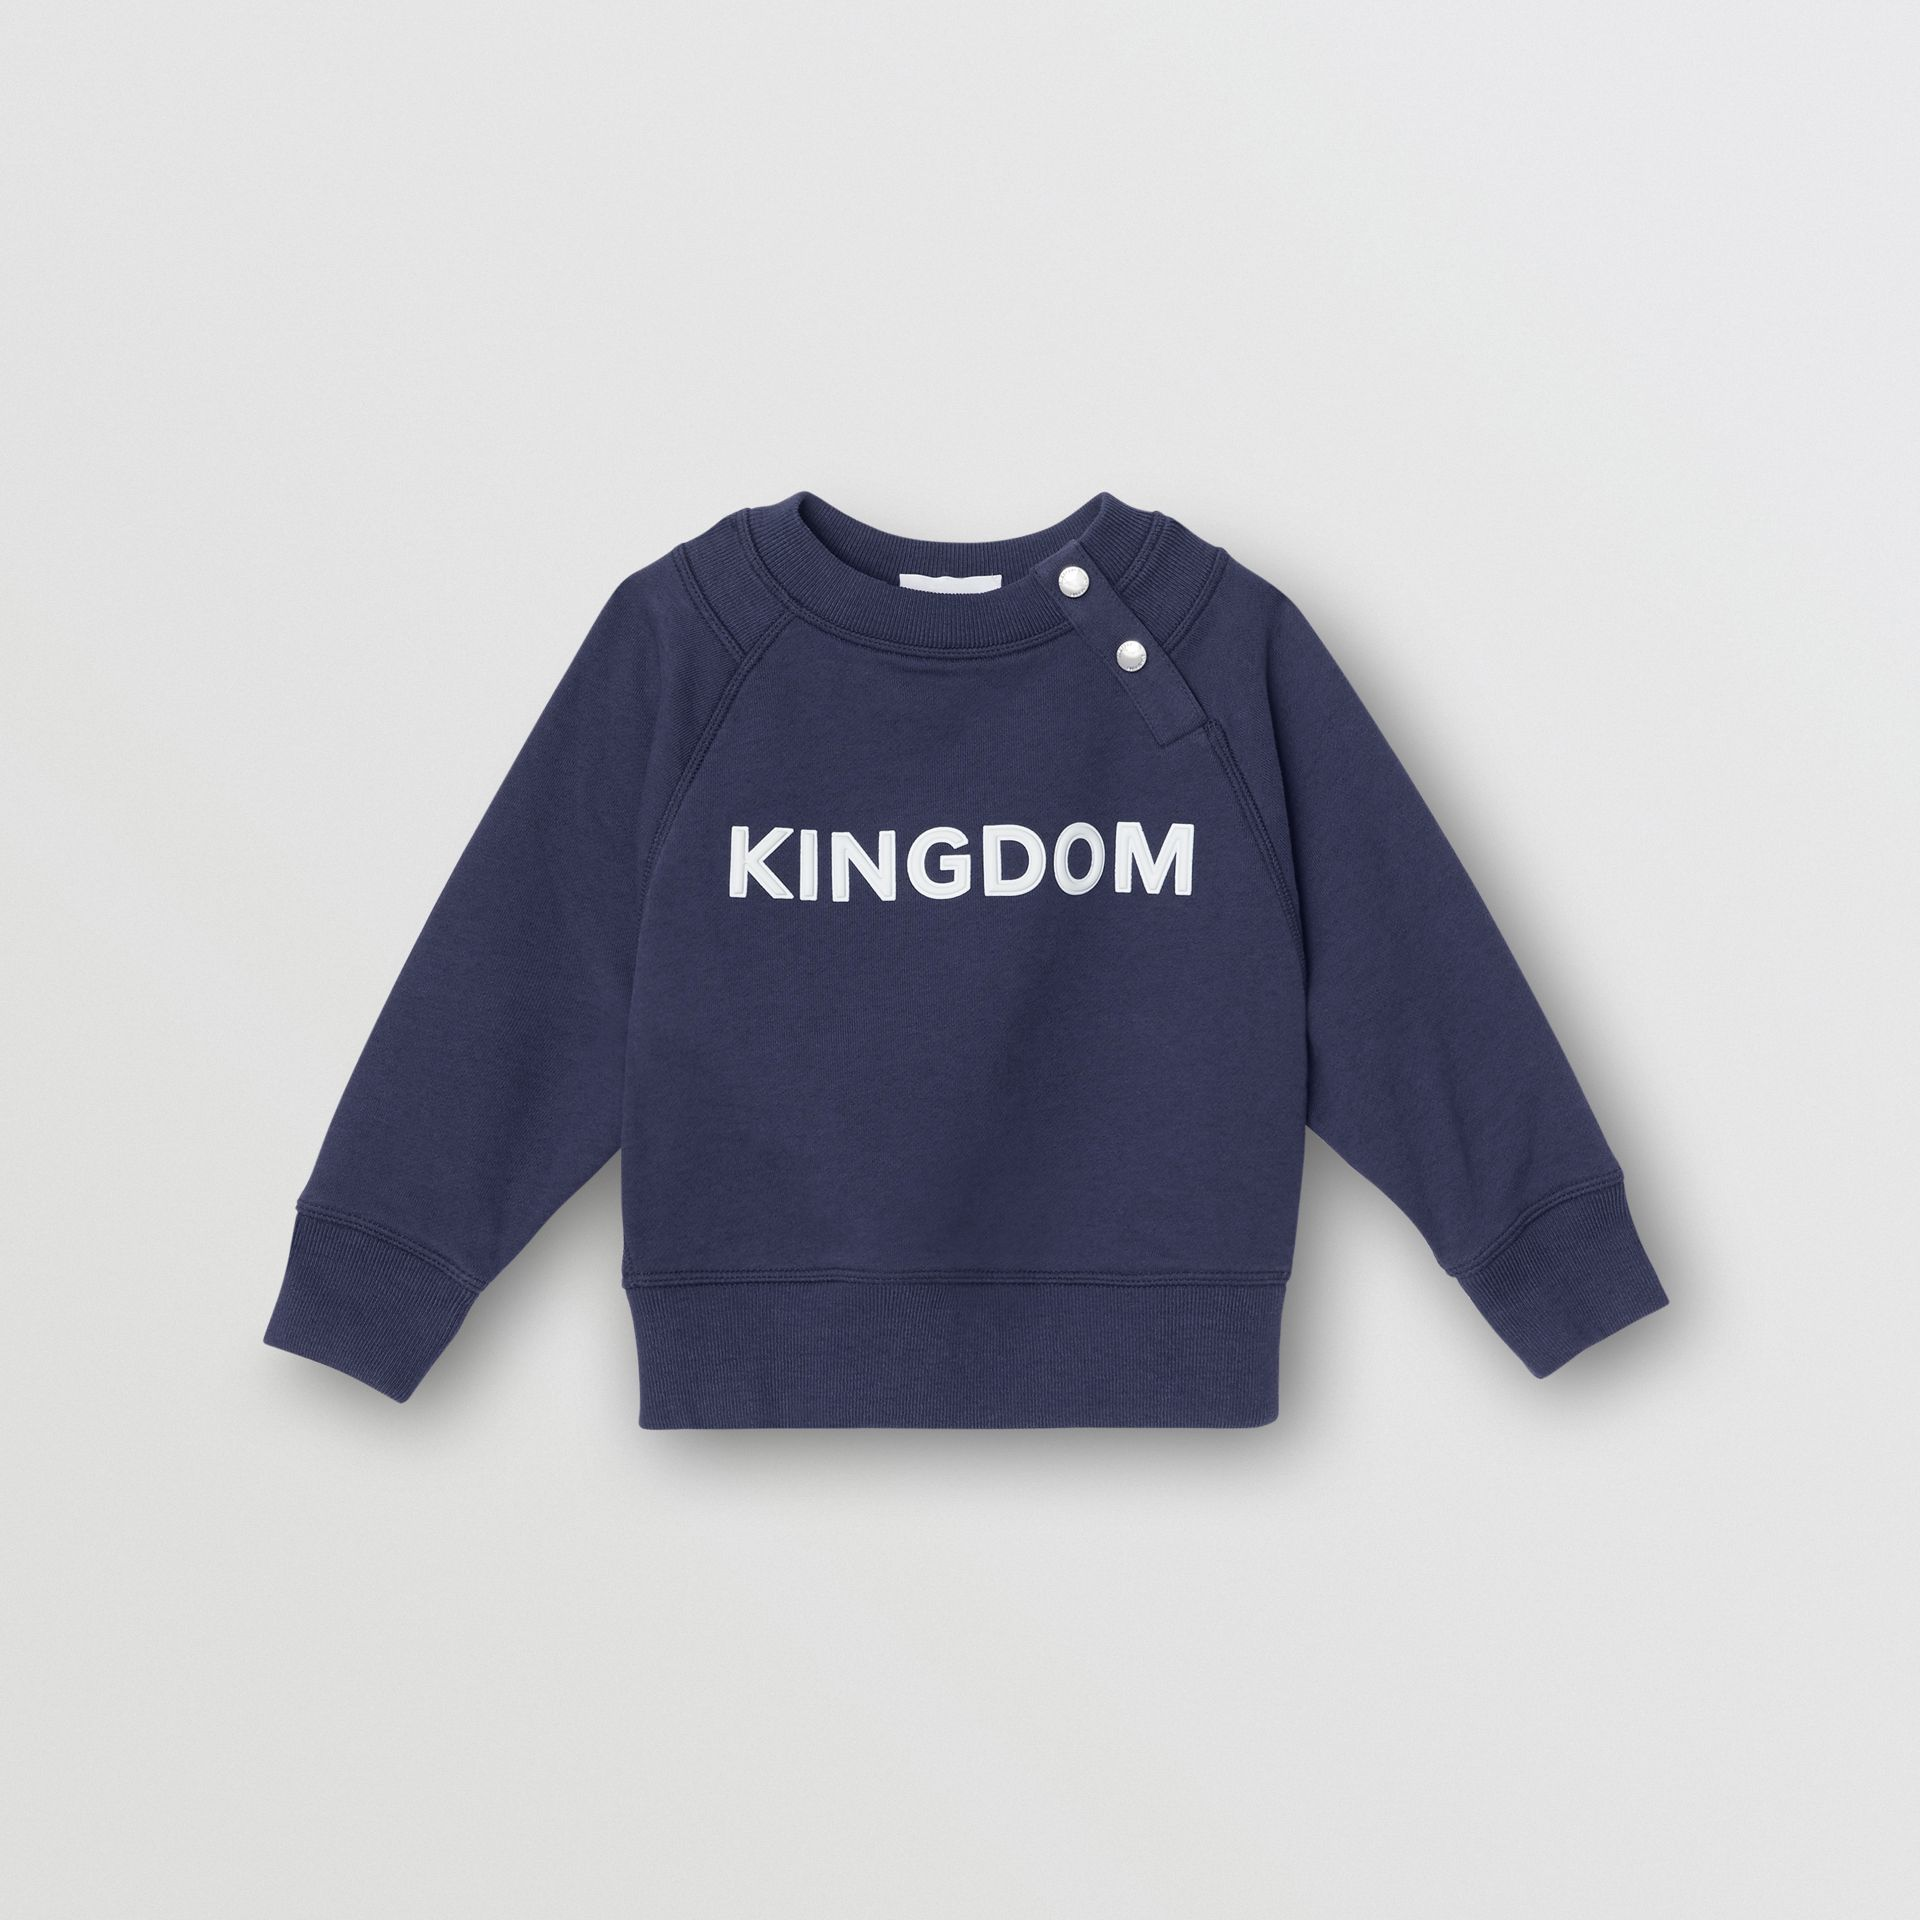 Sweat-shirt en coton Kingdom (Camaïeu De Bleus Ardoise) - Enfant | Burberry - photo de la galerie 0